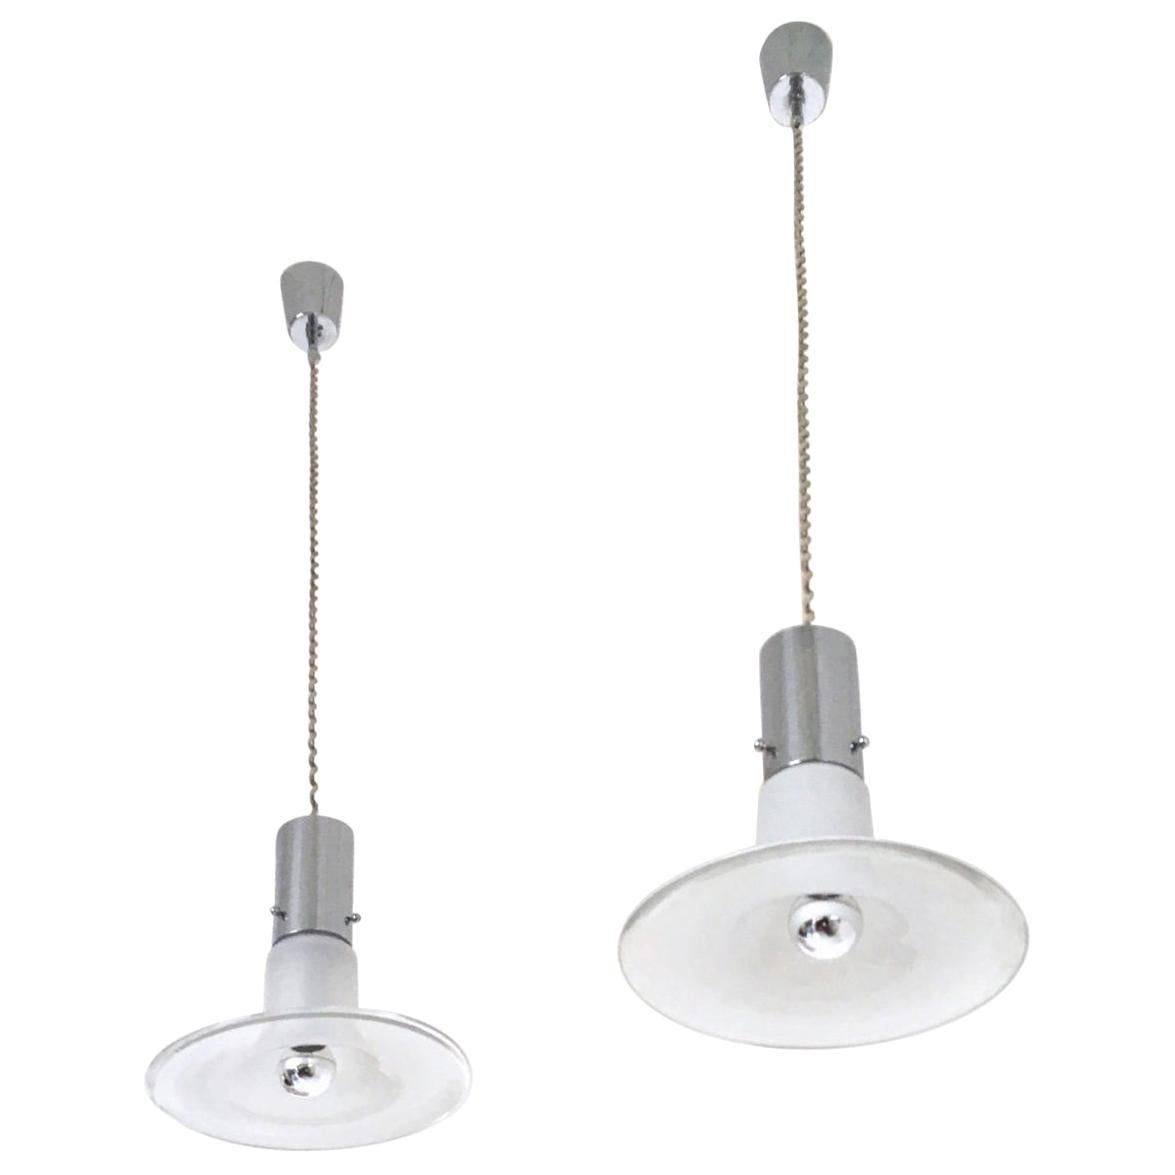 Pair of Pendants Ascribable to Alessandro Pianon for Vistosi, Italy